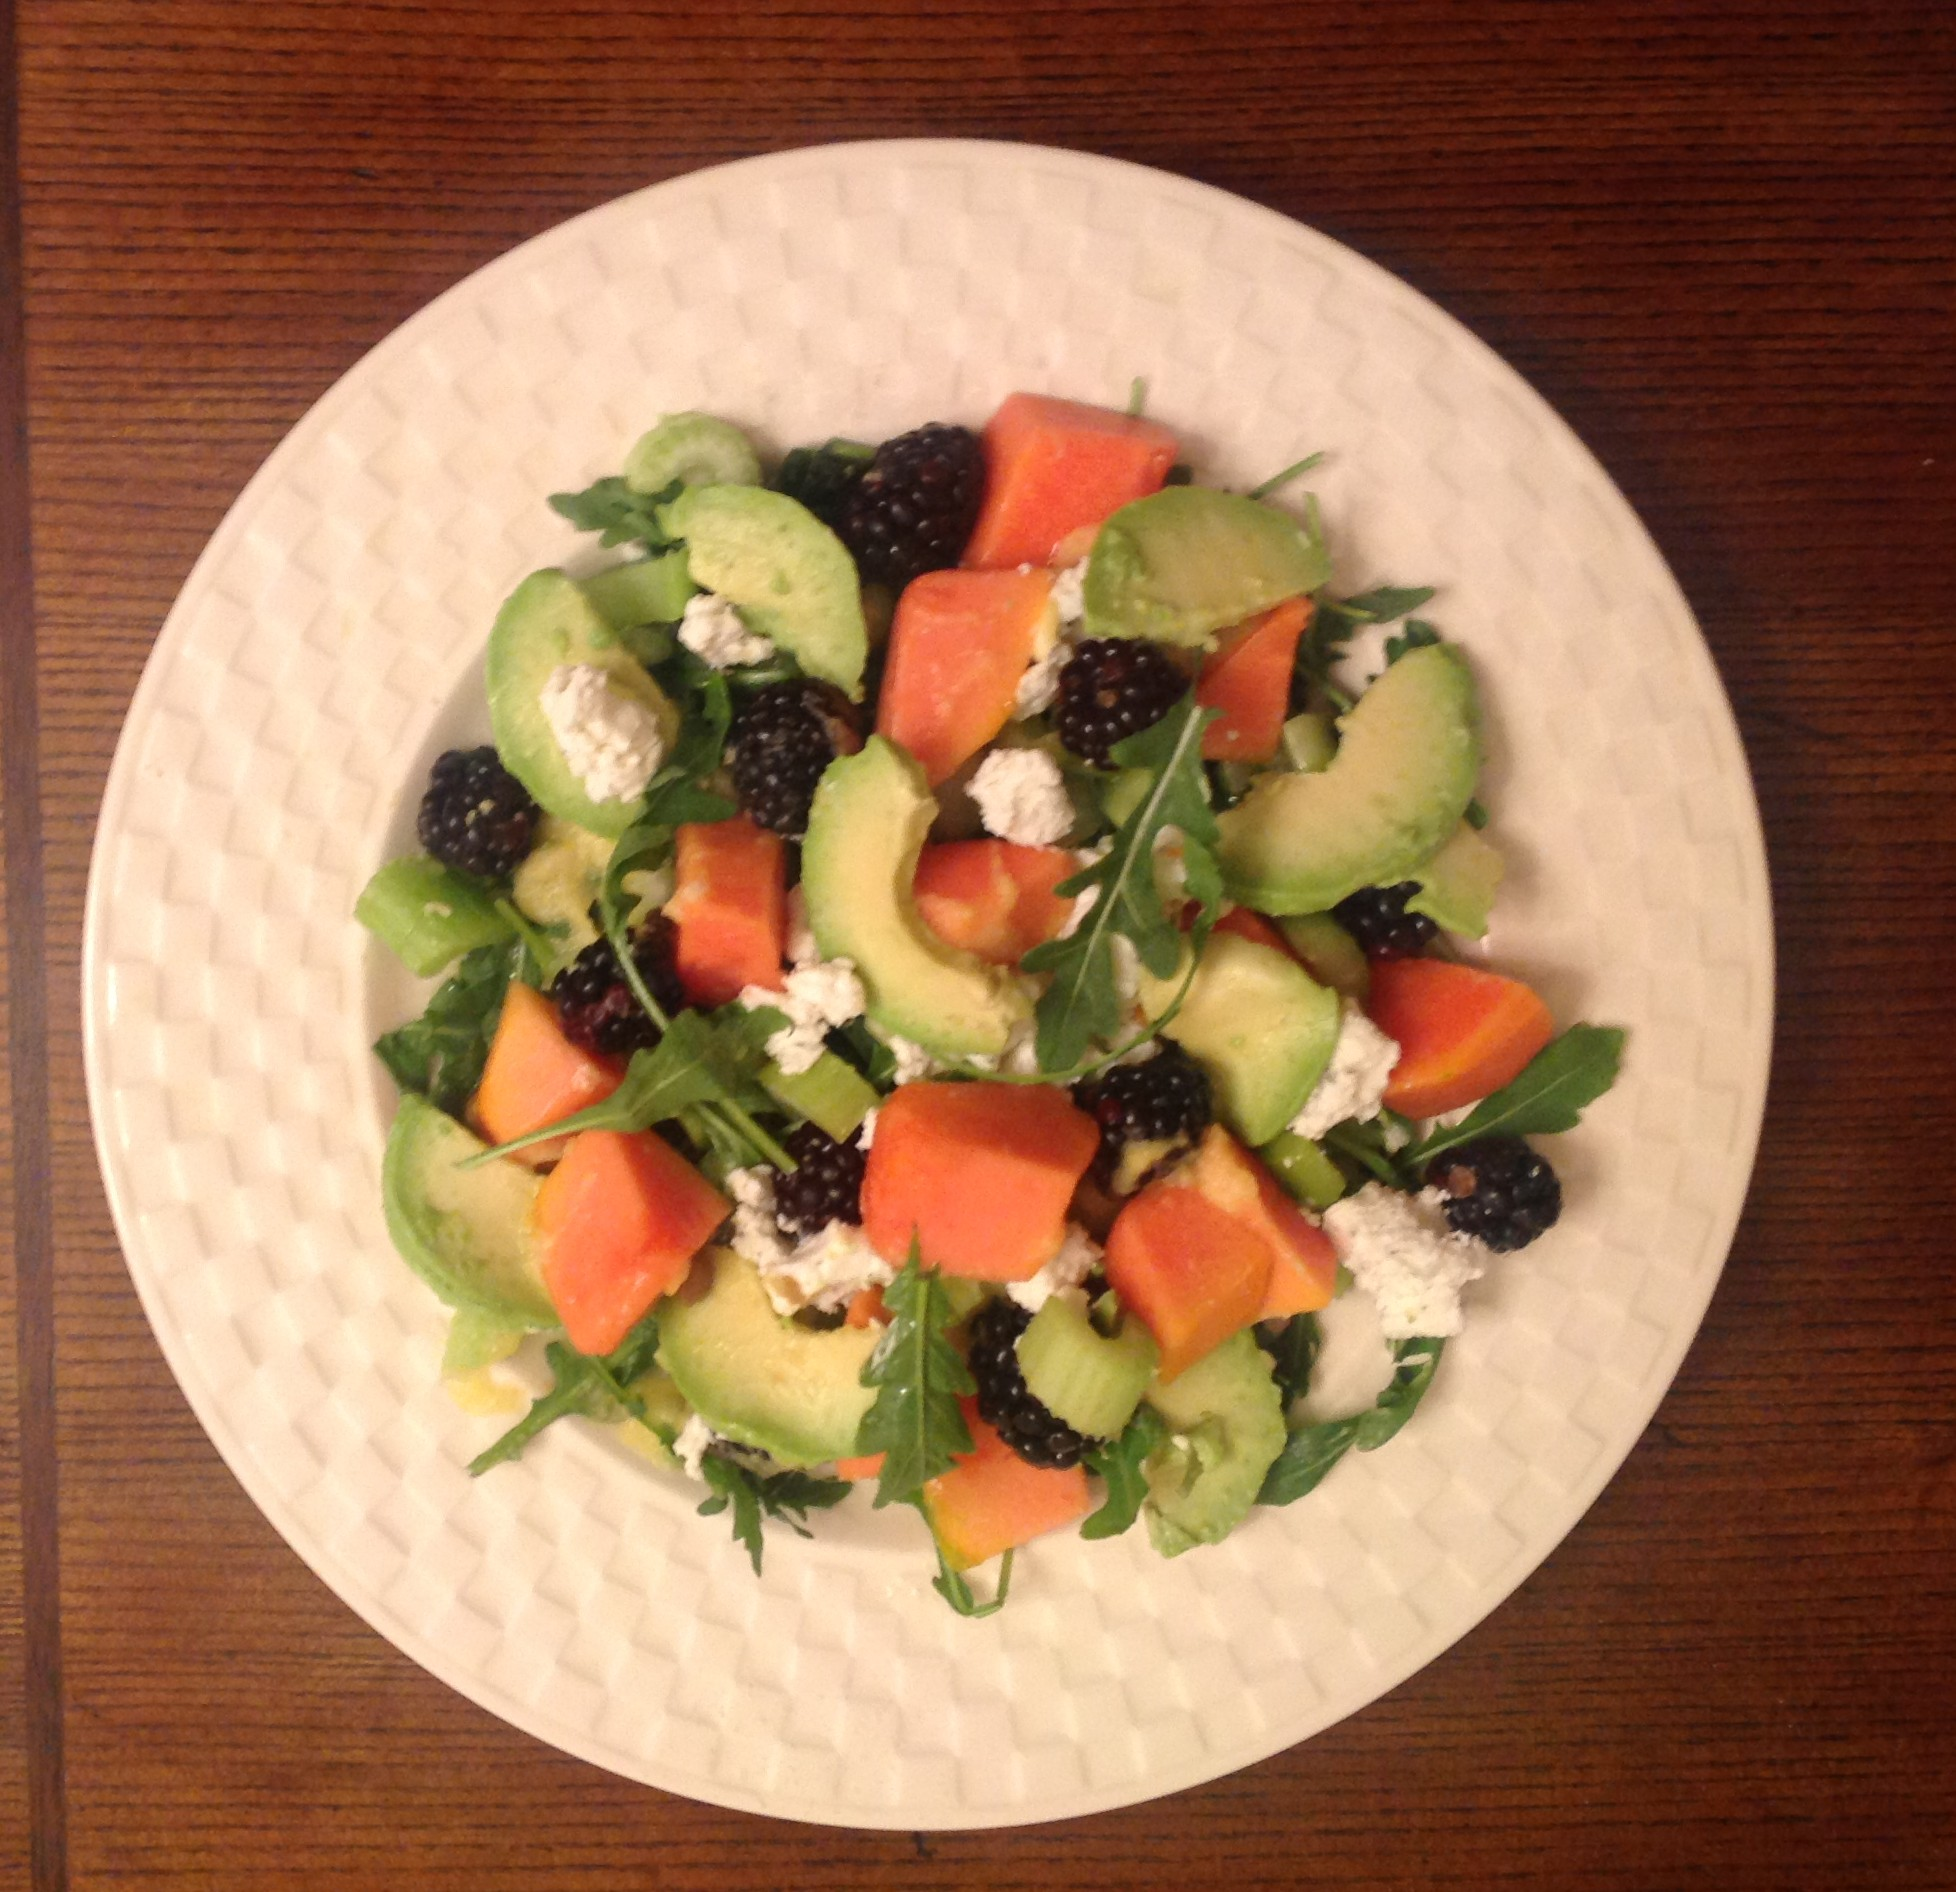 papaya avocado salad recipe yummly papaya and avocado salads with